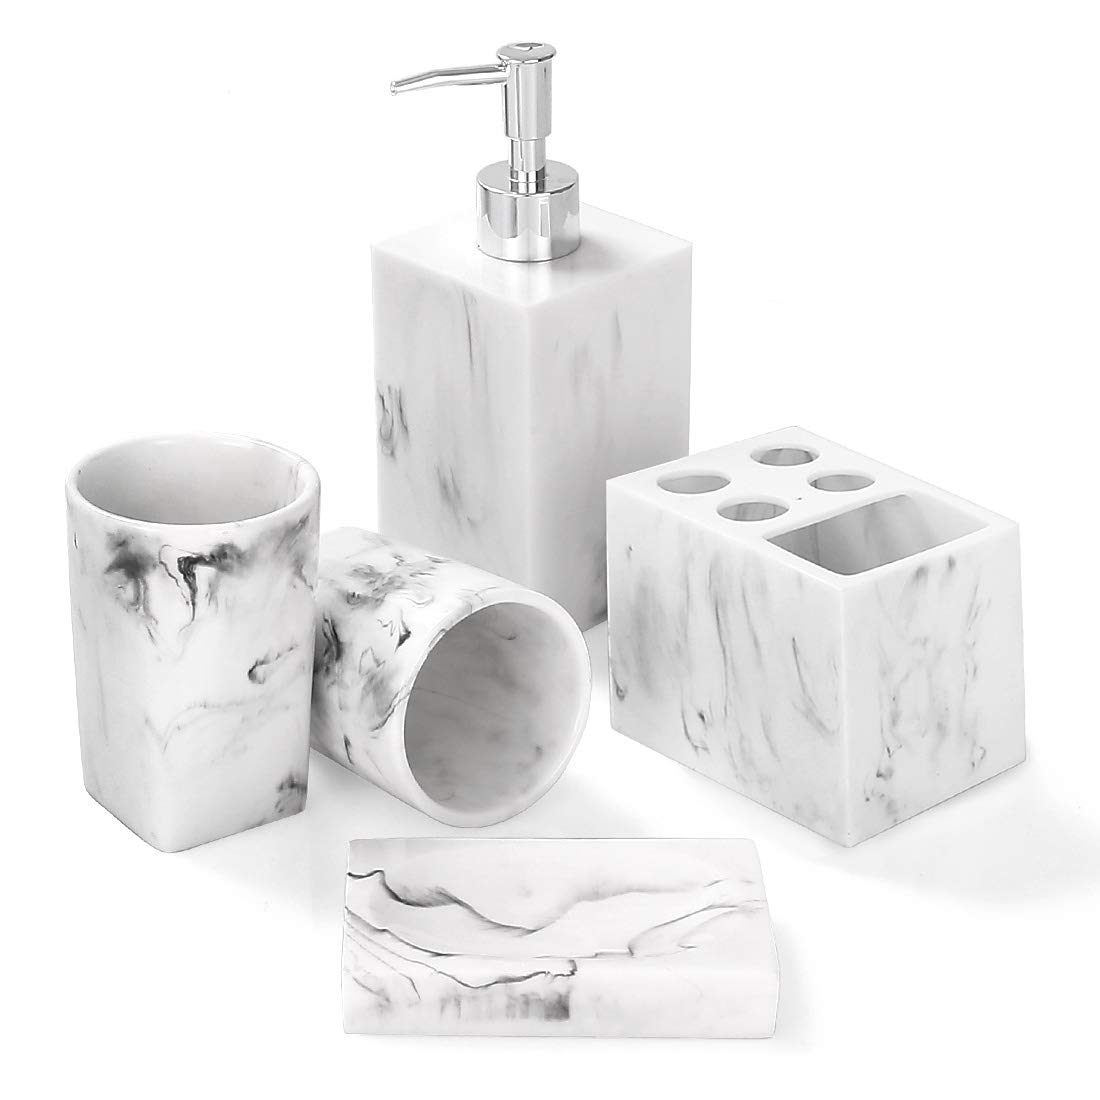 Bathroom Accessories Set 5 Piece Marble Complete Bathroom Set For Bath Decor Includes Toothbrush Holder Soap Dispenser Soap Dish 2 Tumblers Ink White Buy Online In Pakistan At Desertcart Pk Productid 162450423